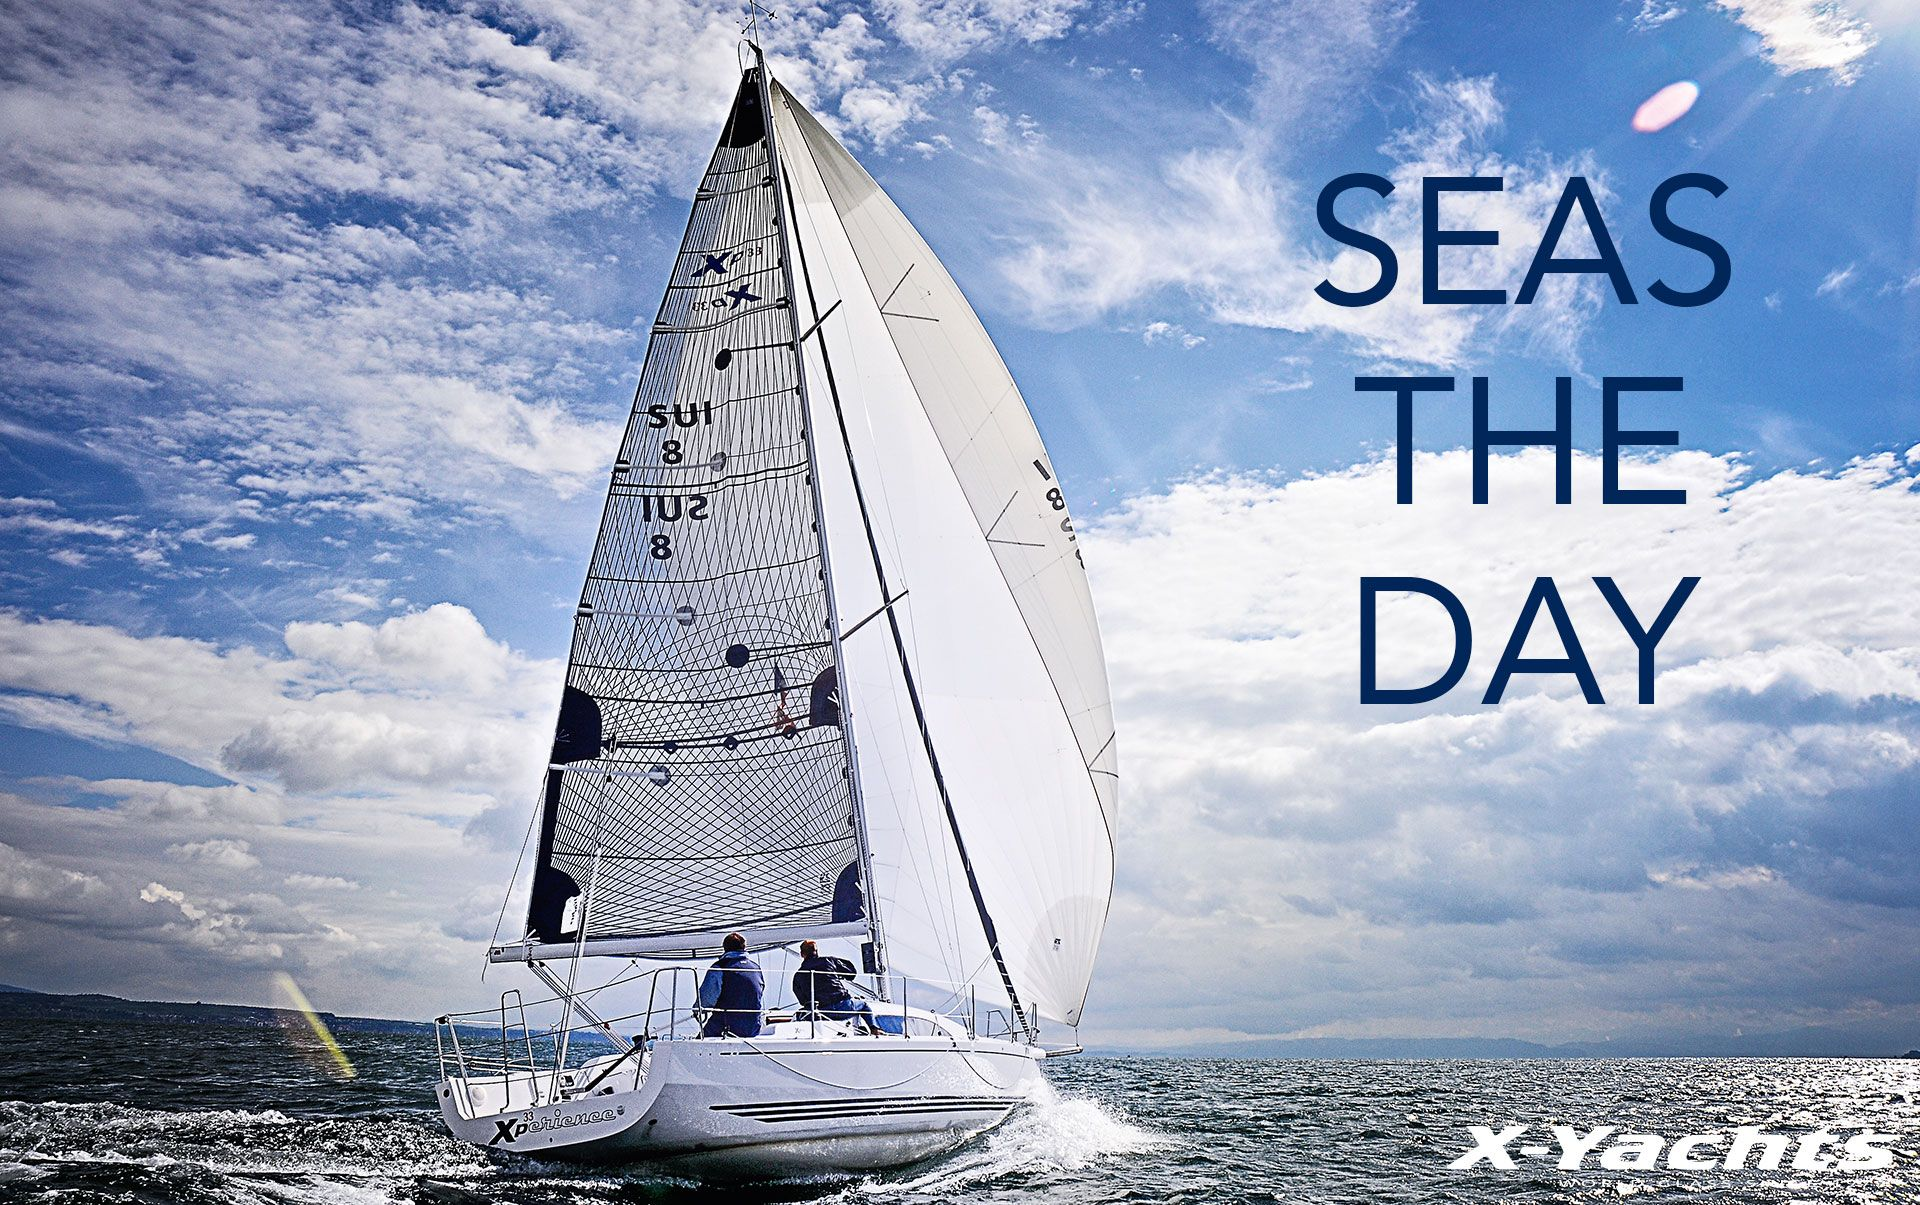 Seas The Day Sailing Quote Funny